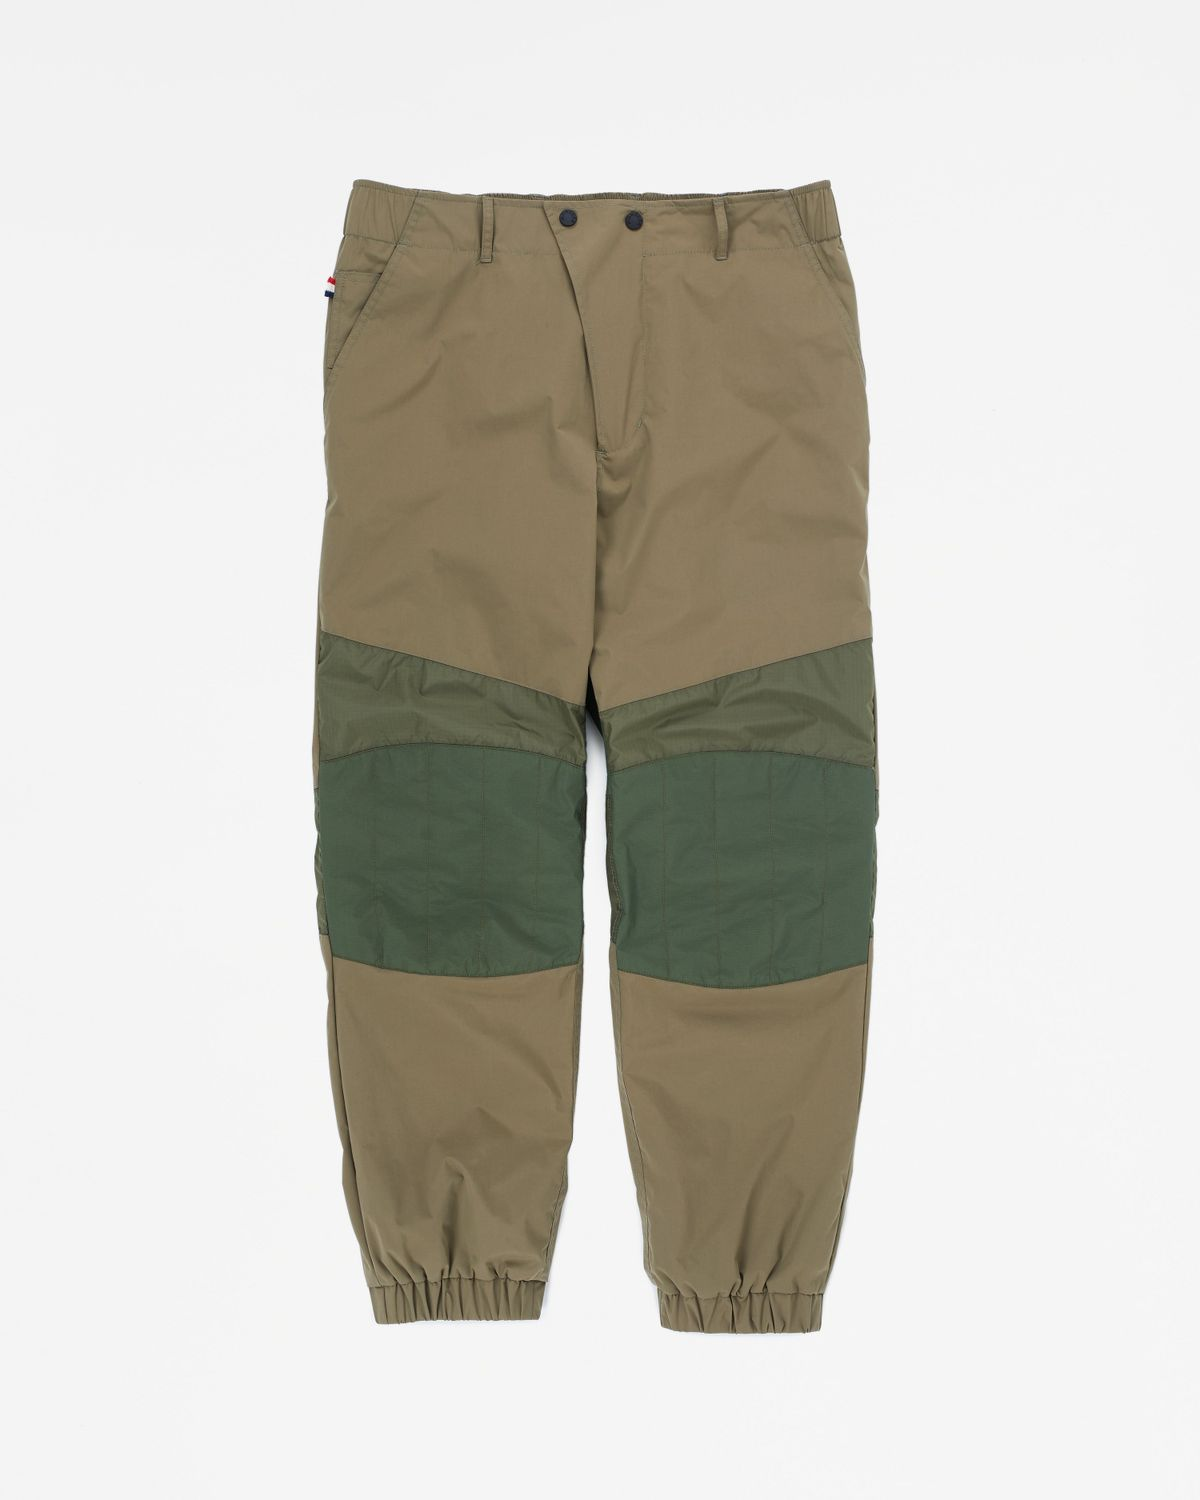 Moncler — Grenoble Recycled Sports Trousers - Image 1